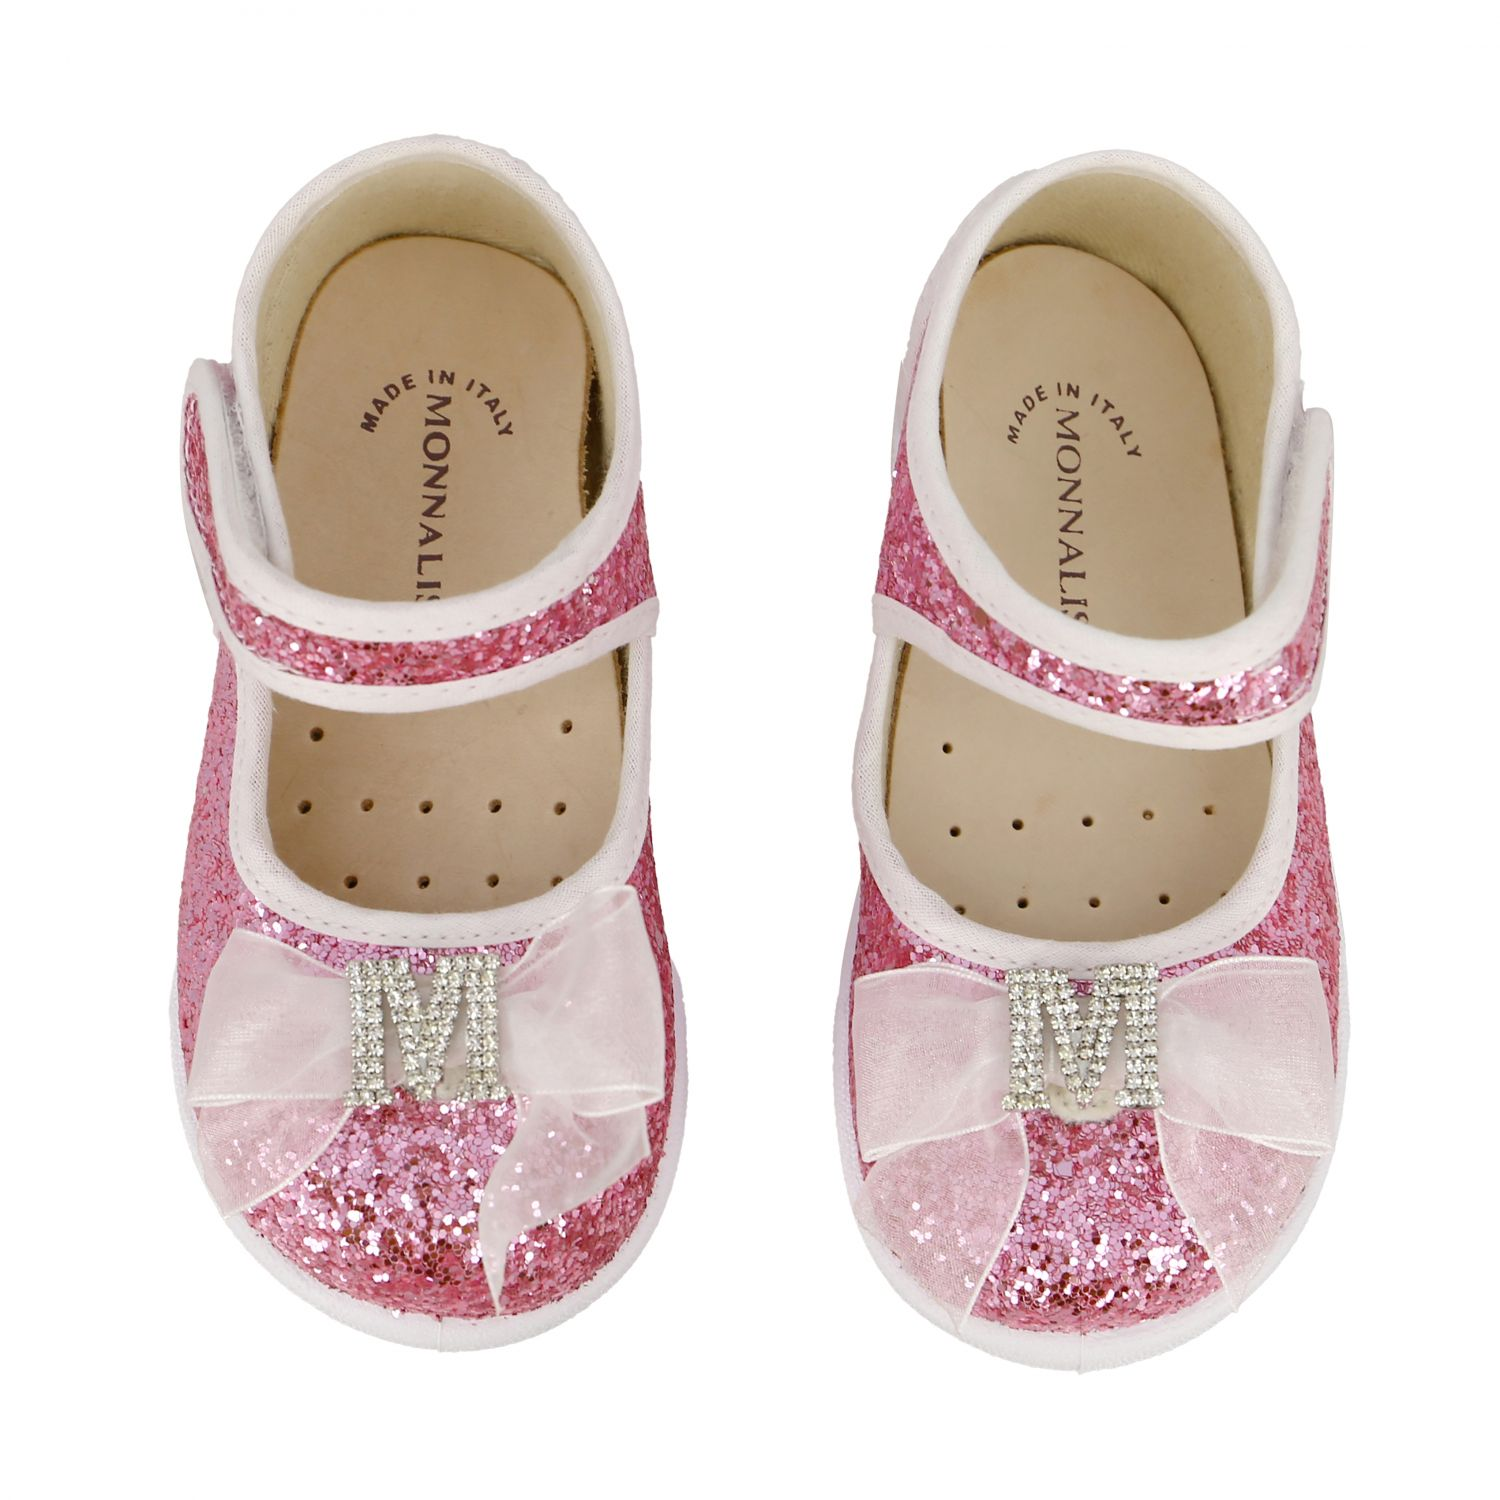 Monnalisa ballet flats in glitter fabric with bow and rhinestones pink 3